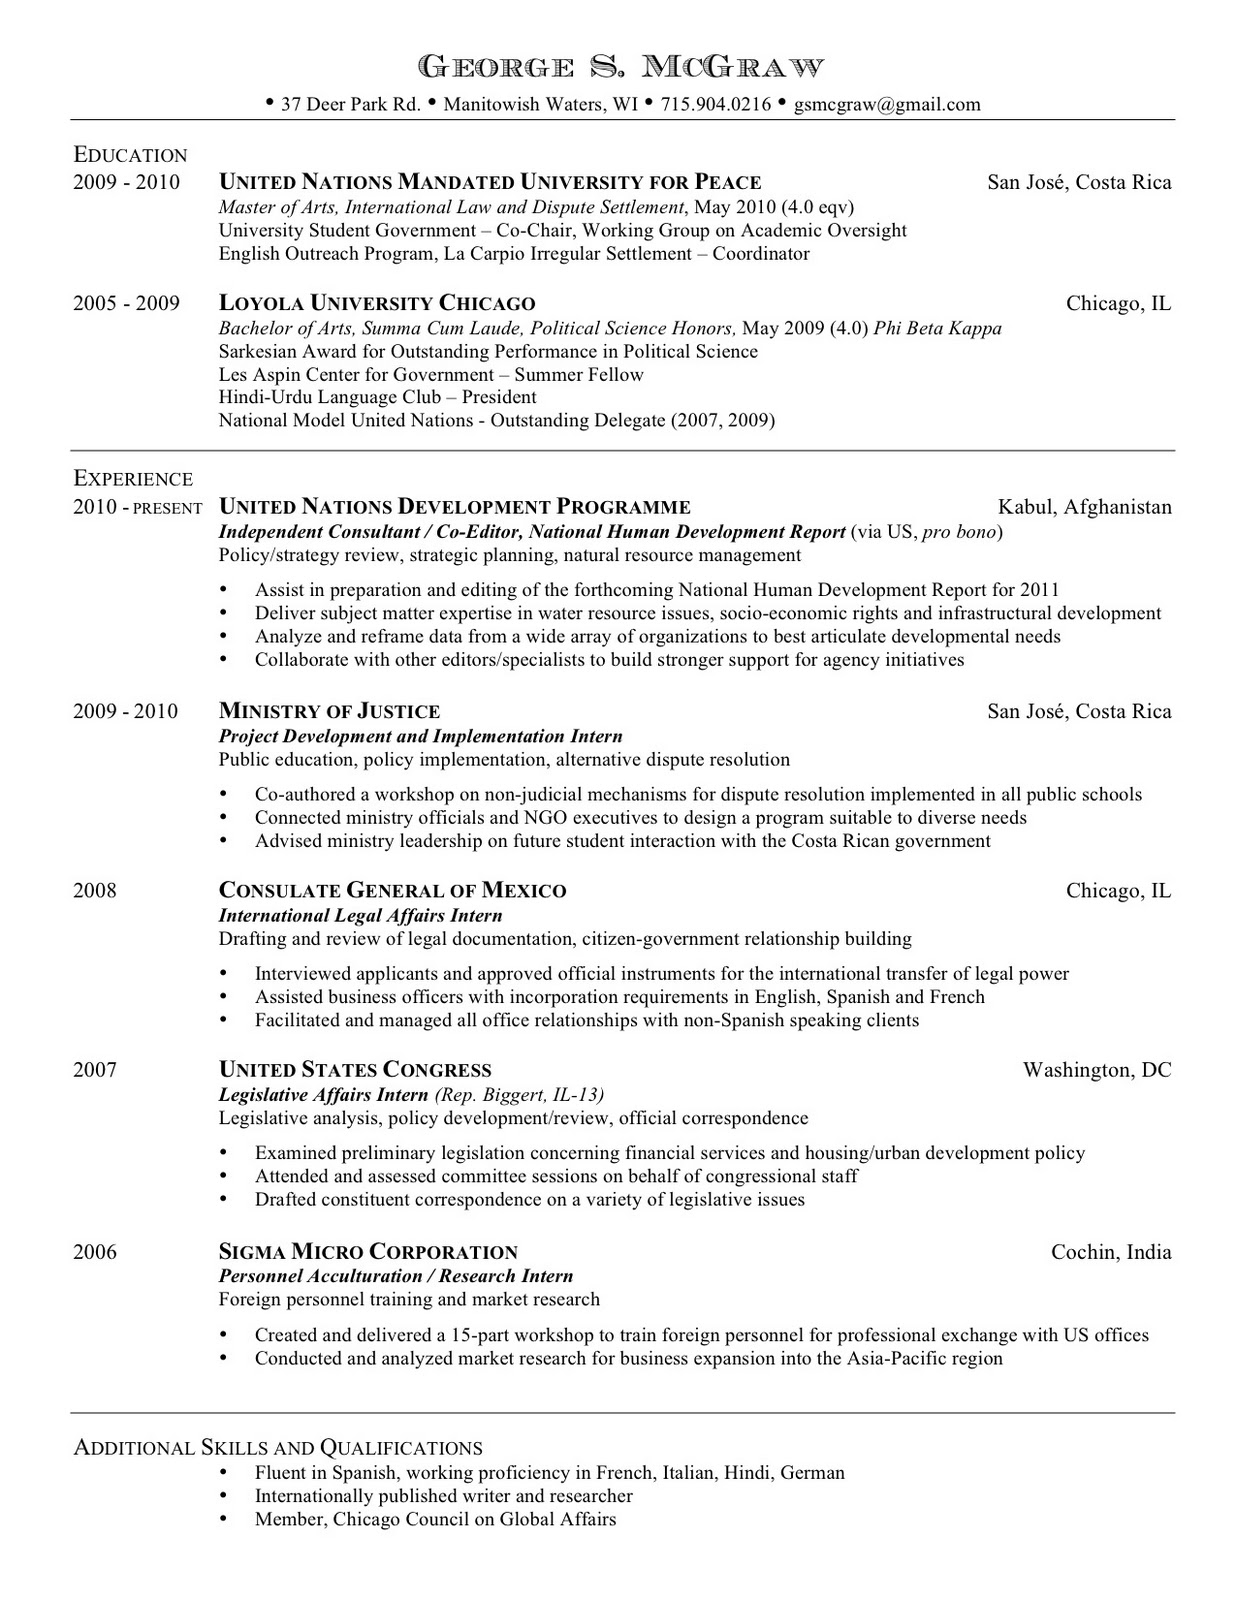 resume and publications resume